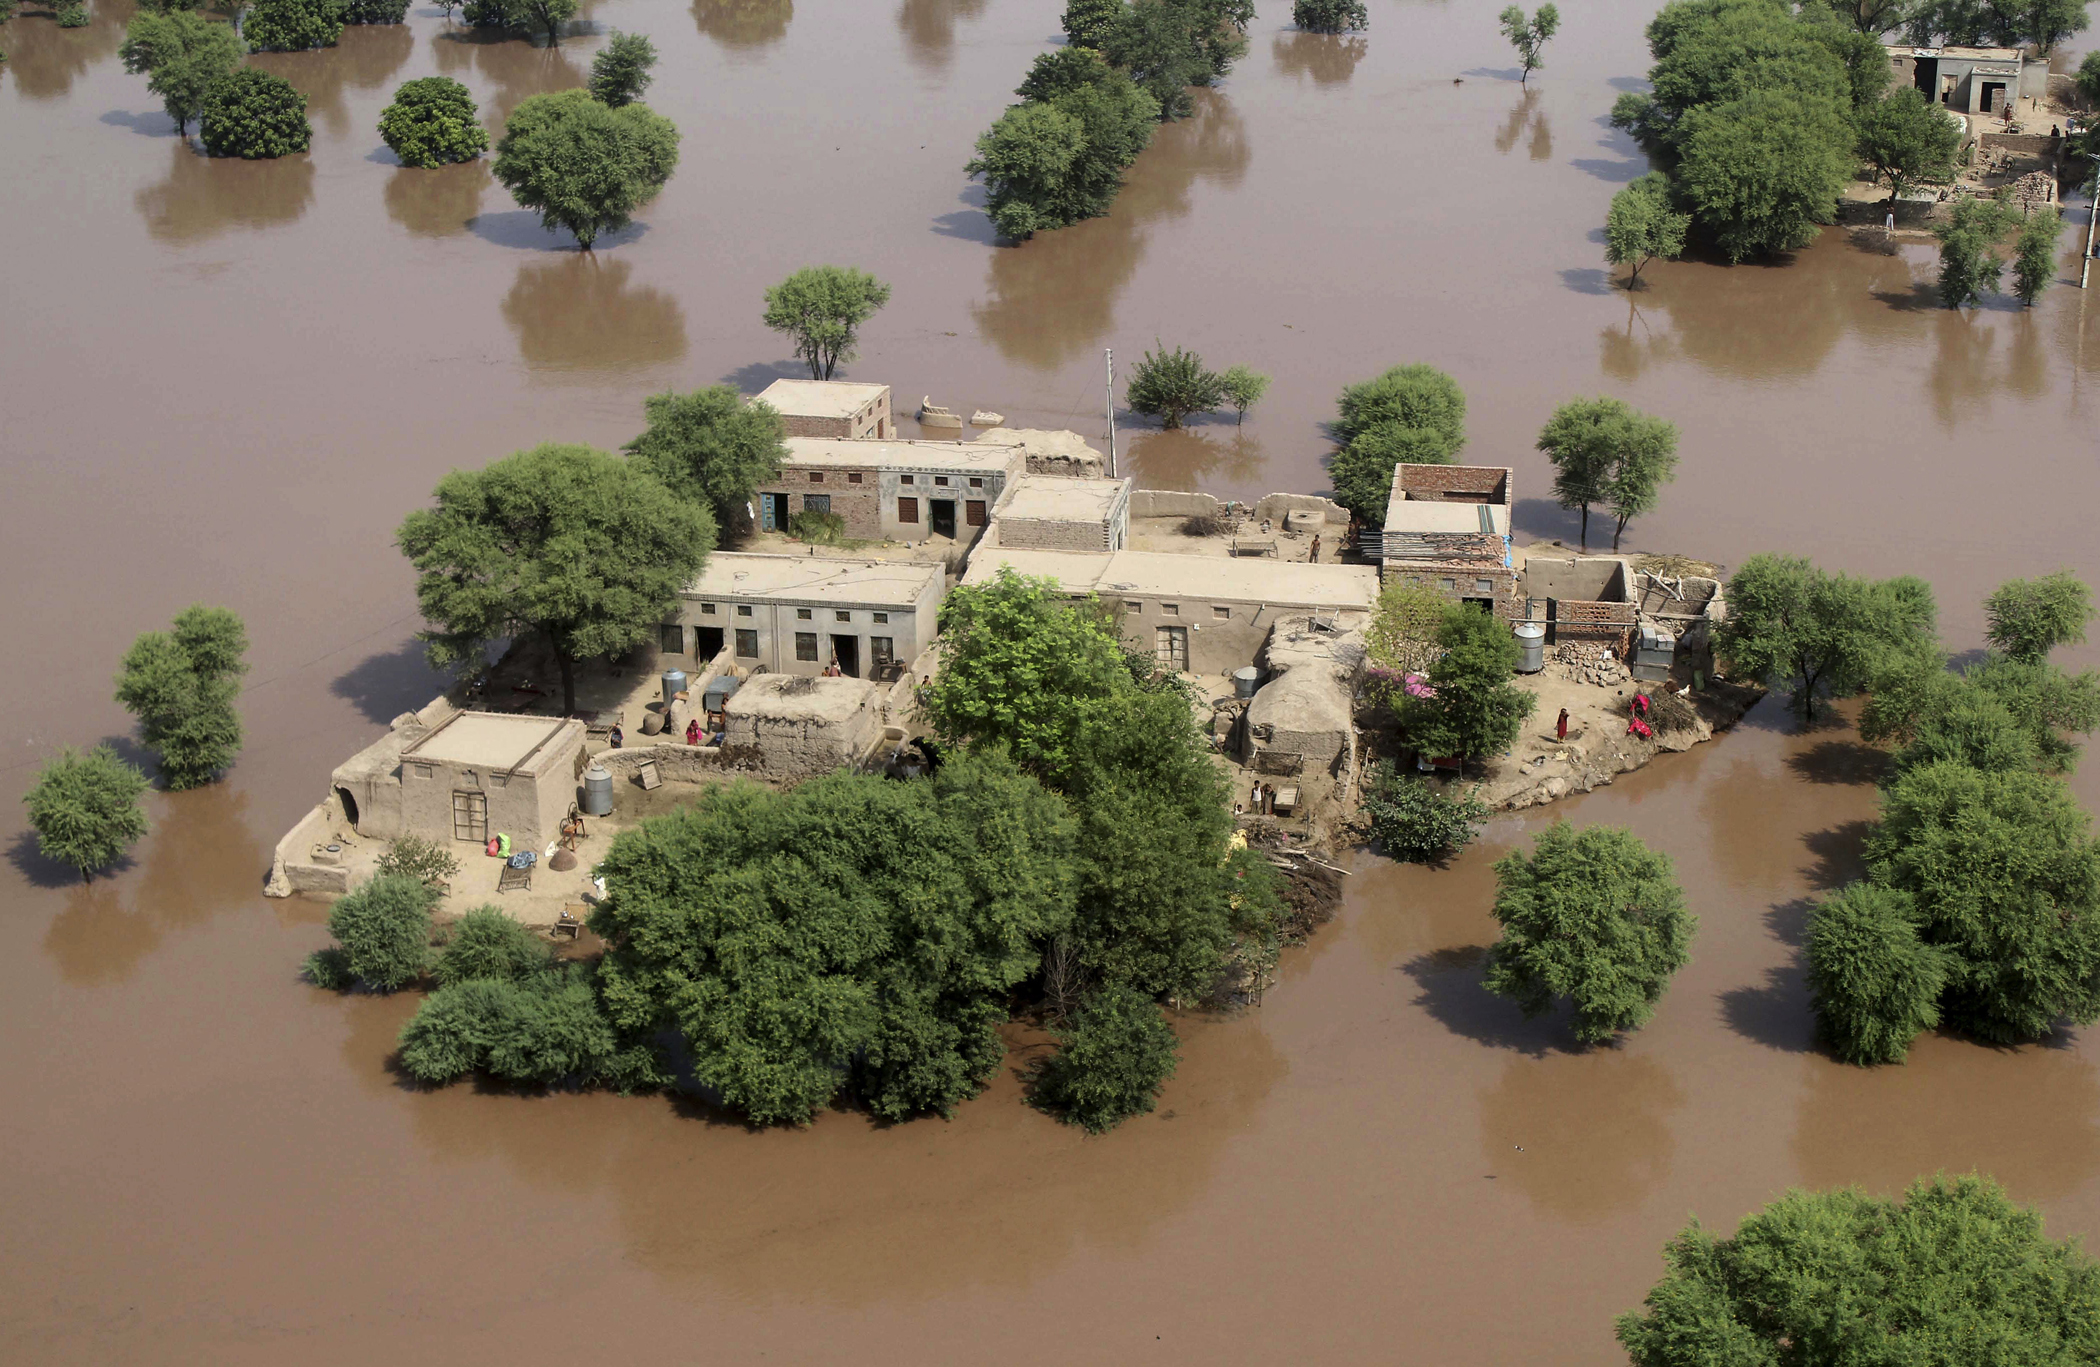 An aerial view shows houses surrounded by flood waters in district Multan, Pakistan, Sept. 12, 2014.